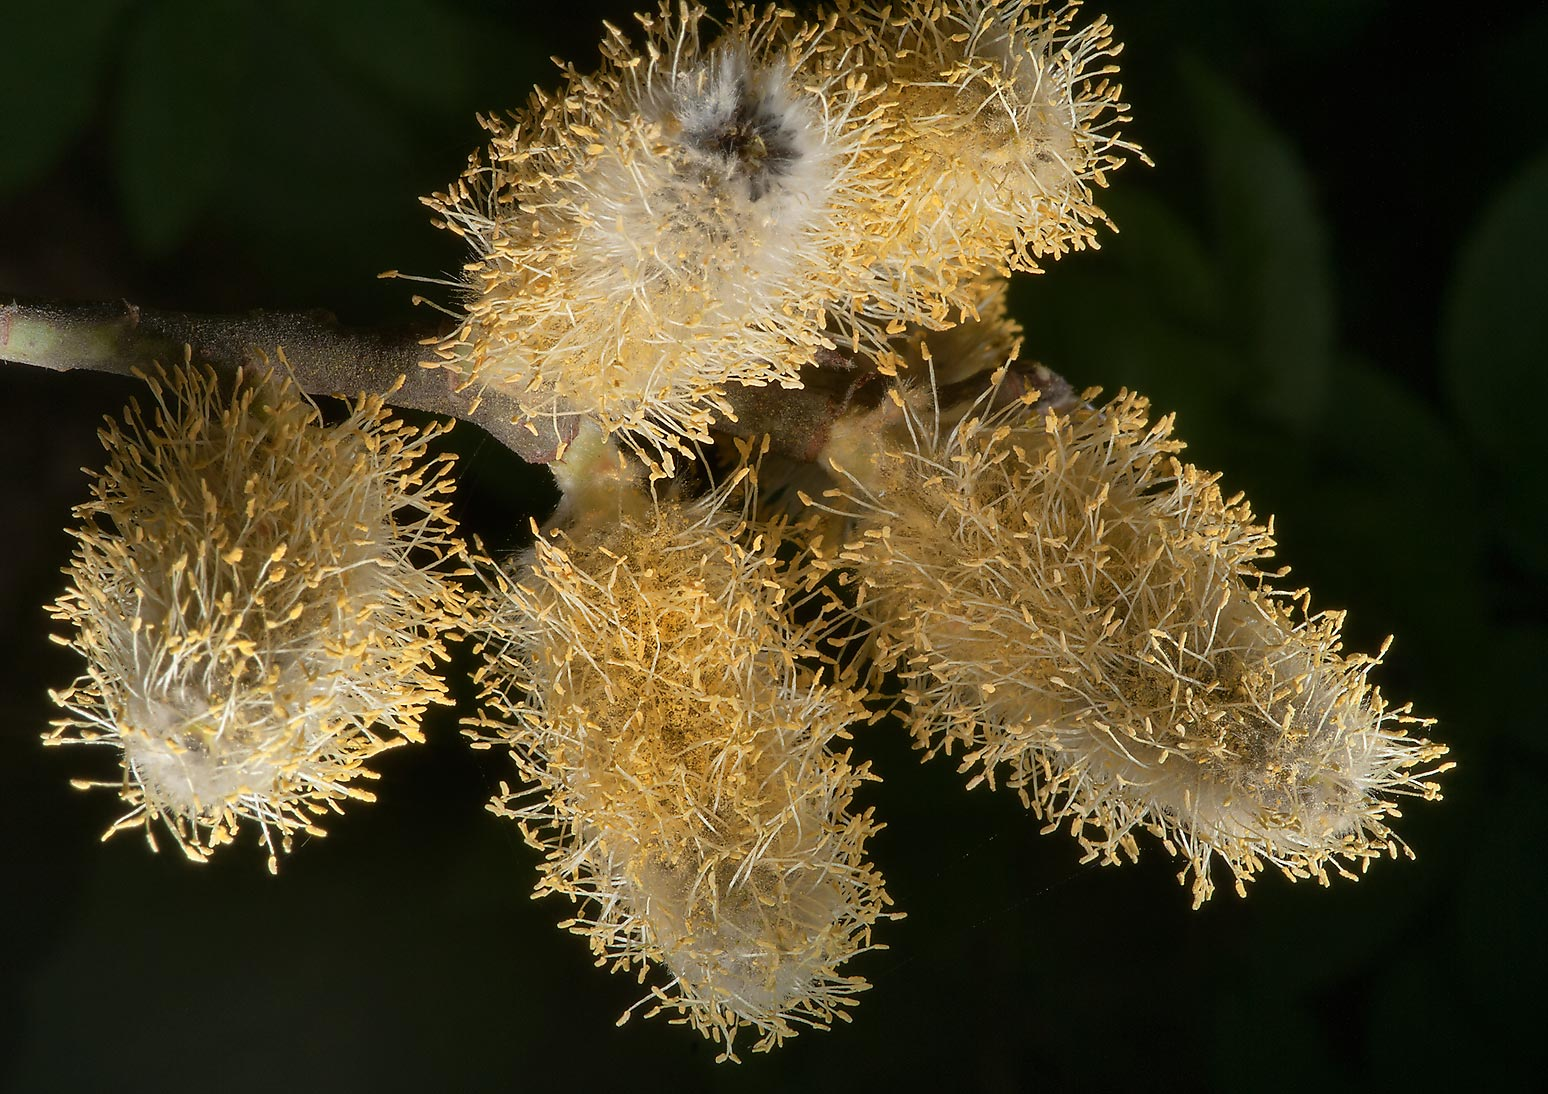 Willow catkins (Salix caprea, Russian name Iva...Park, suburb of St.Petersburg. Russia